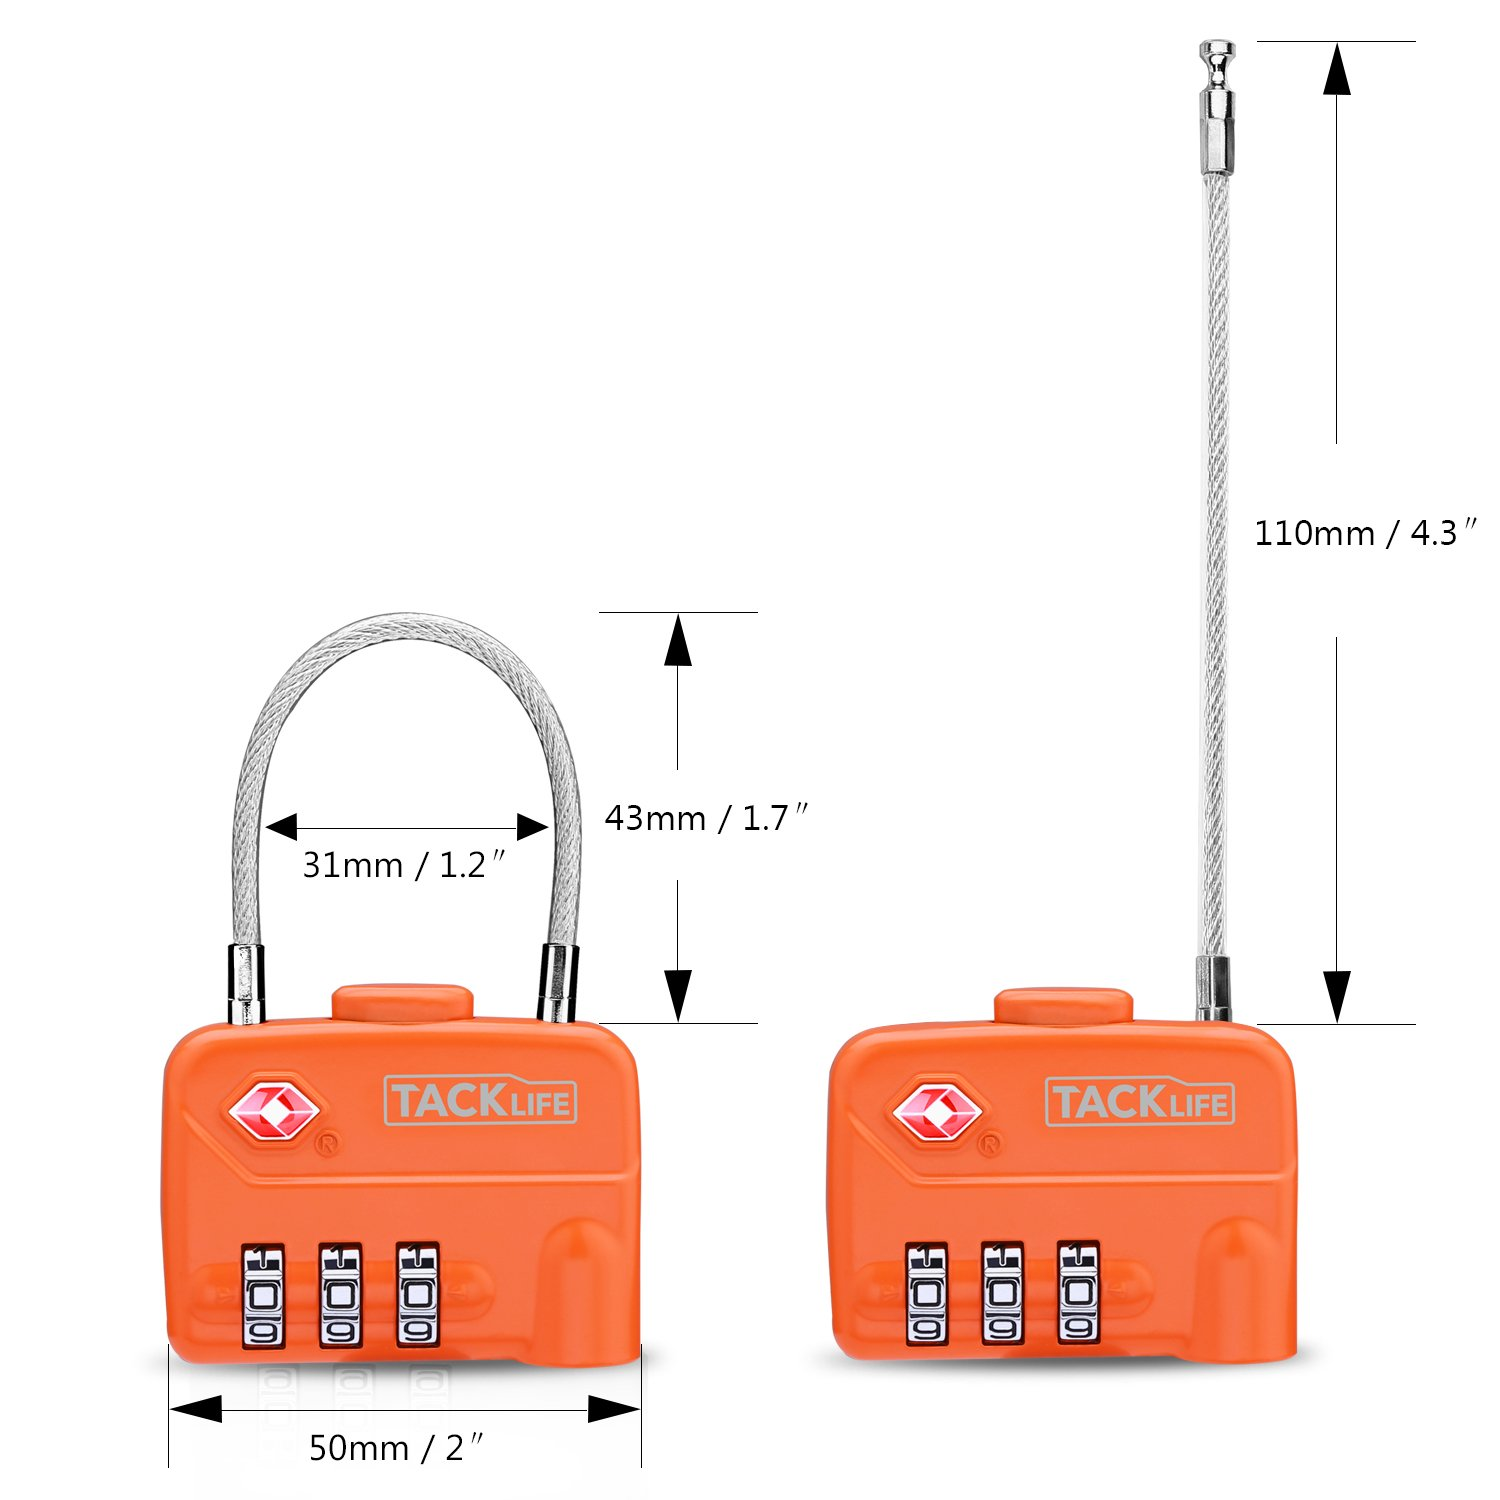 Luggage Locks, TACKLIFE HCL1A Cable Locks, TSA Approved Travel Locks, Flexible Locks, 3Digit Combination Locks for Gym, School, Locker, Outdoor, Fence, Suitcase & Baggage - Orange by TACKLIFE (Image #2)